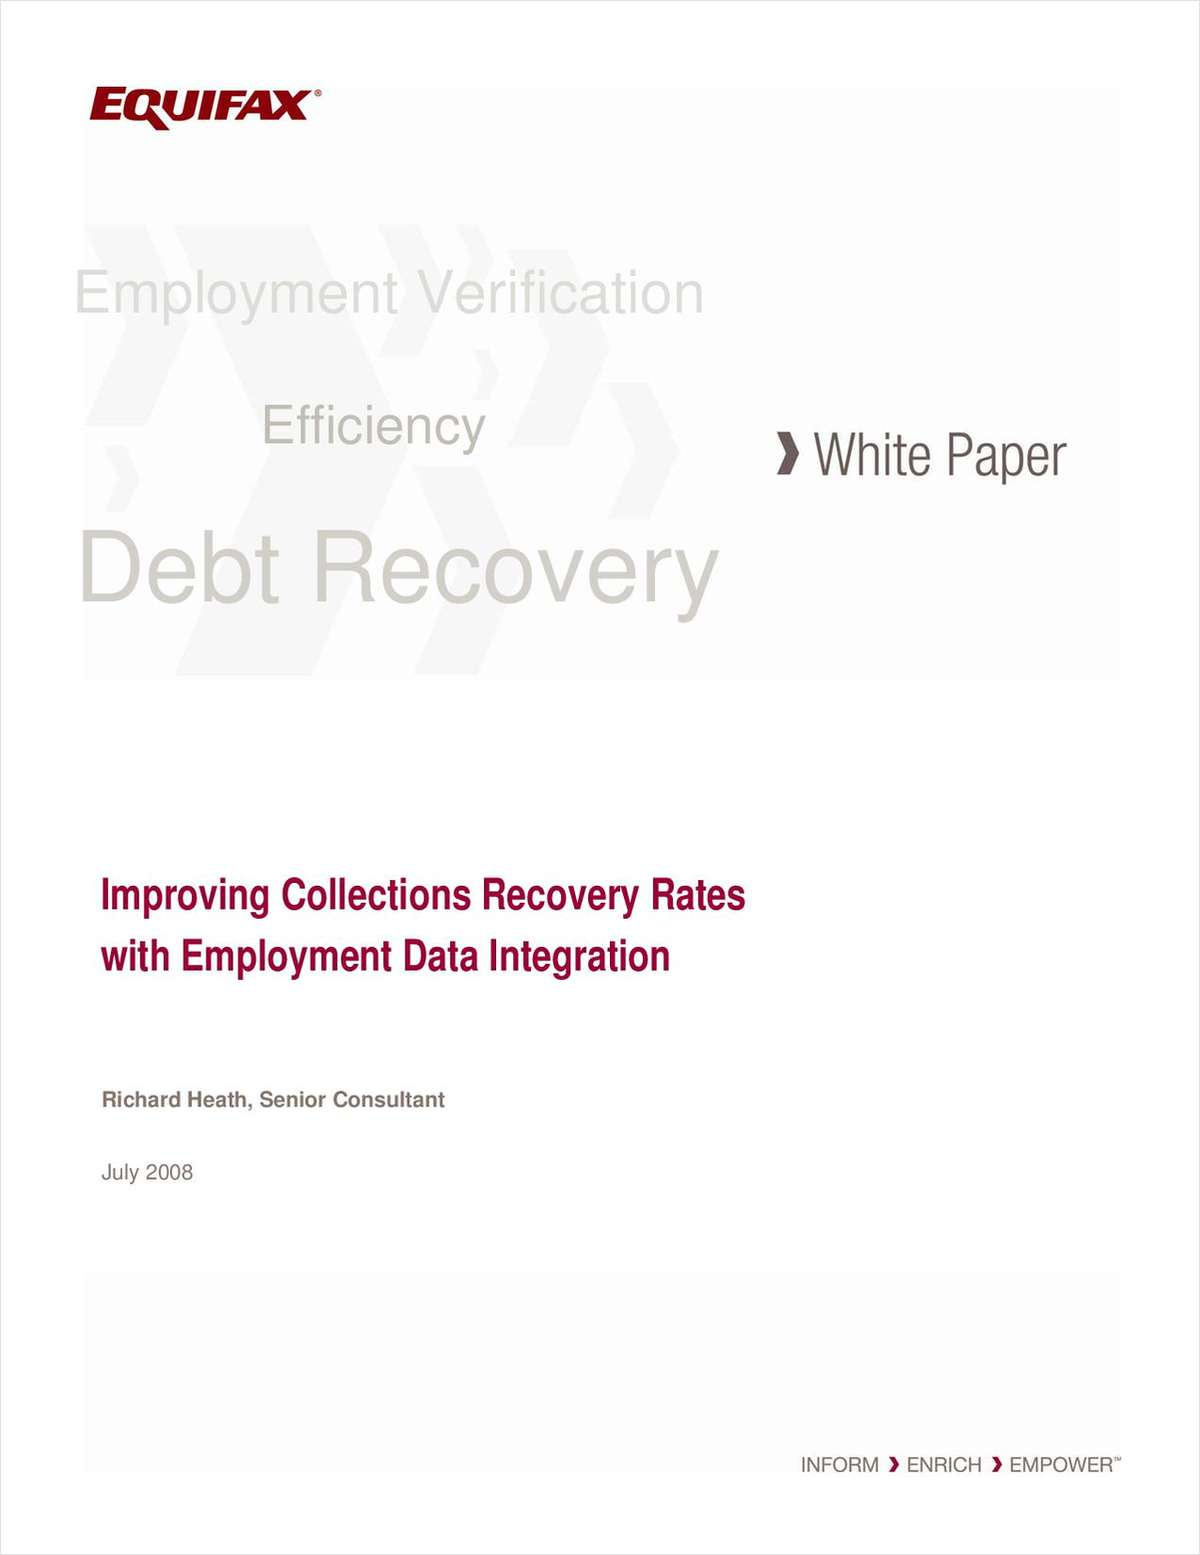 Improving Collections Recovery Rates with Employment Data Integration